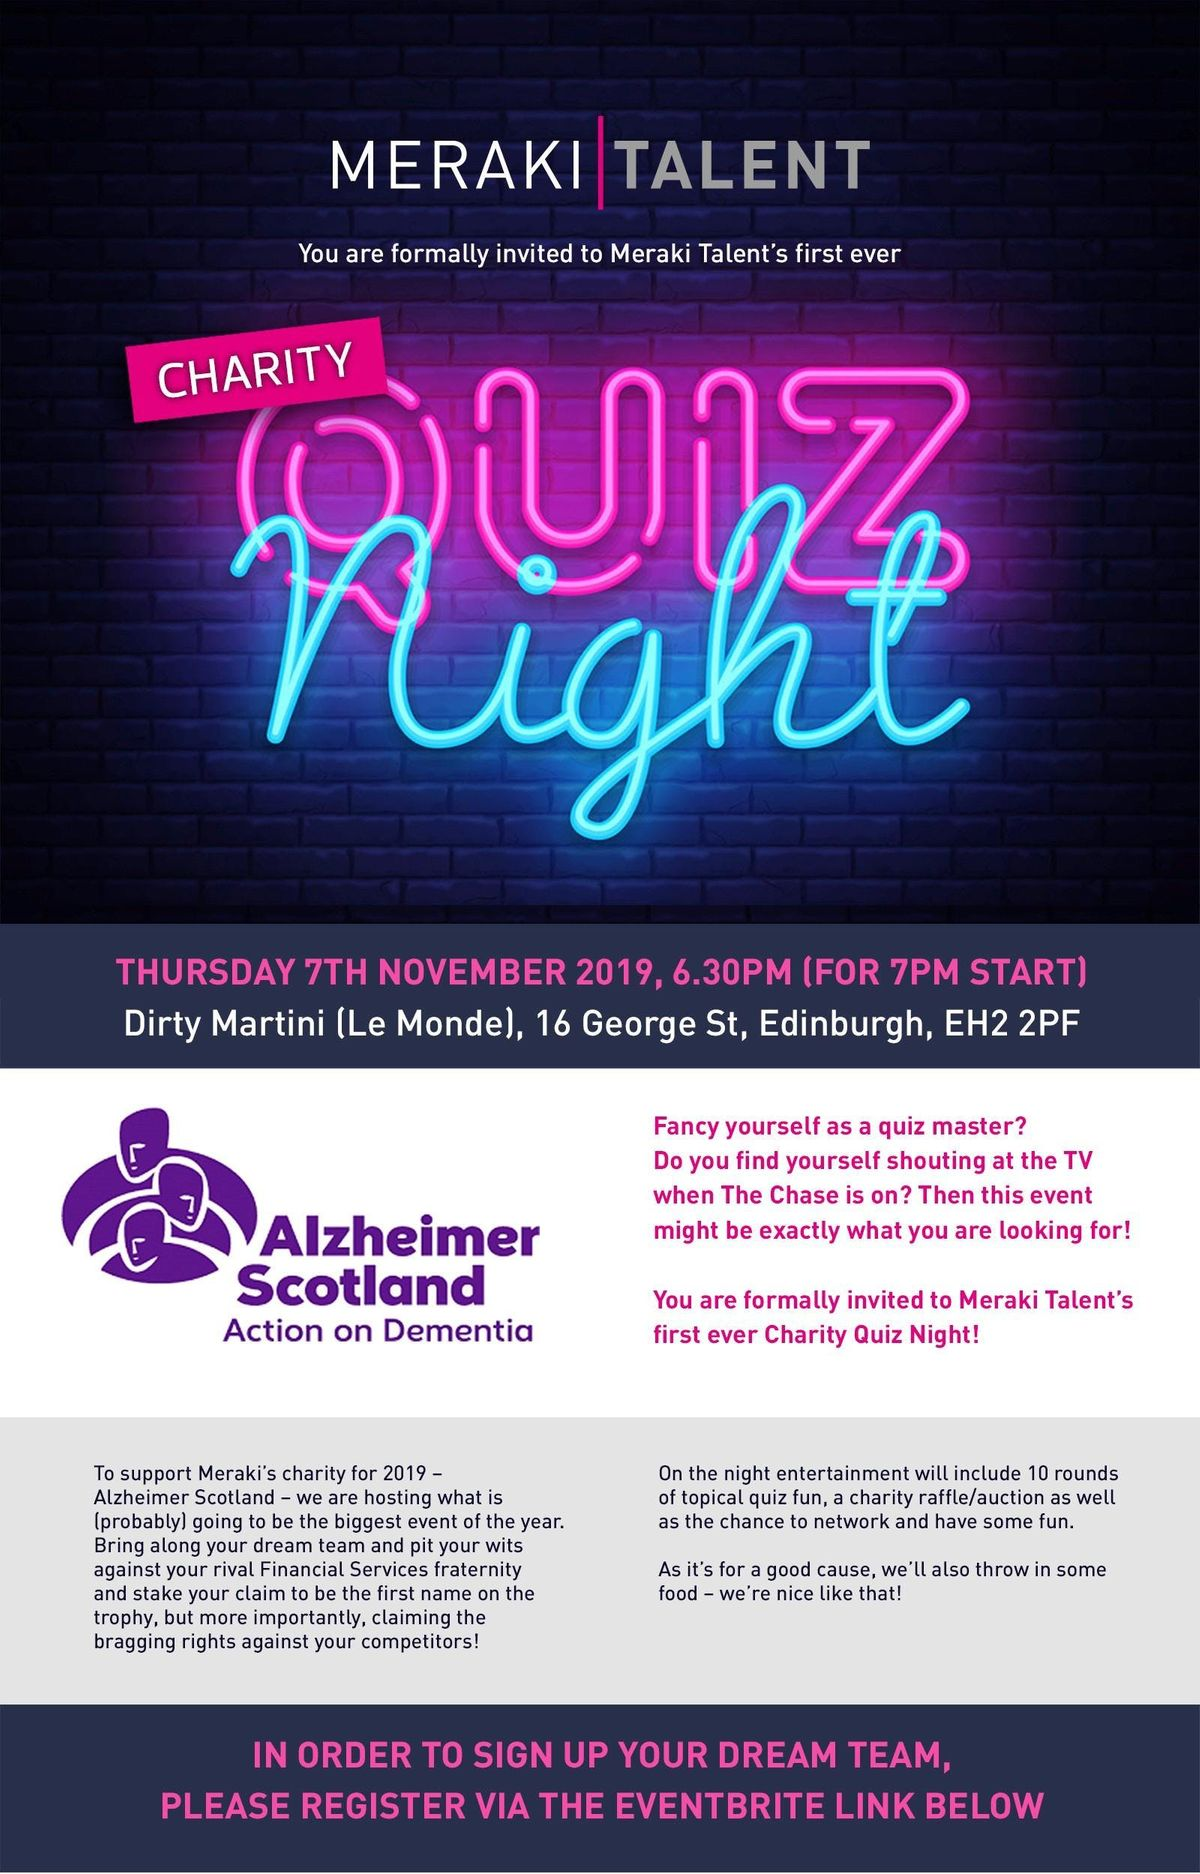 Meraki Talent's Charity Quiz Night